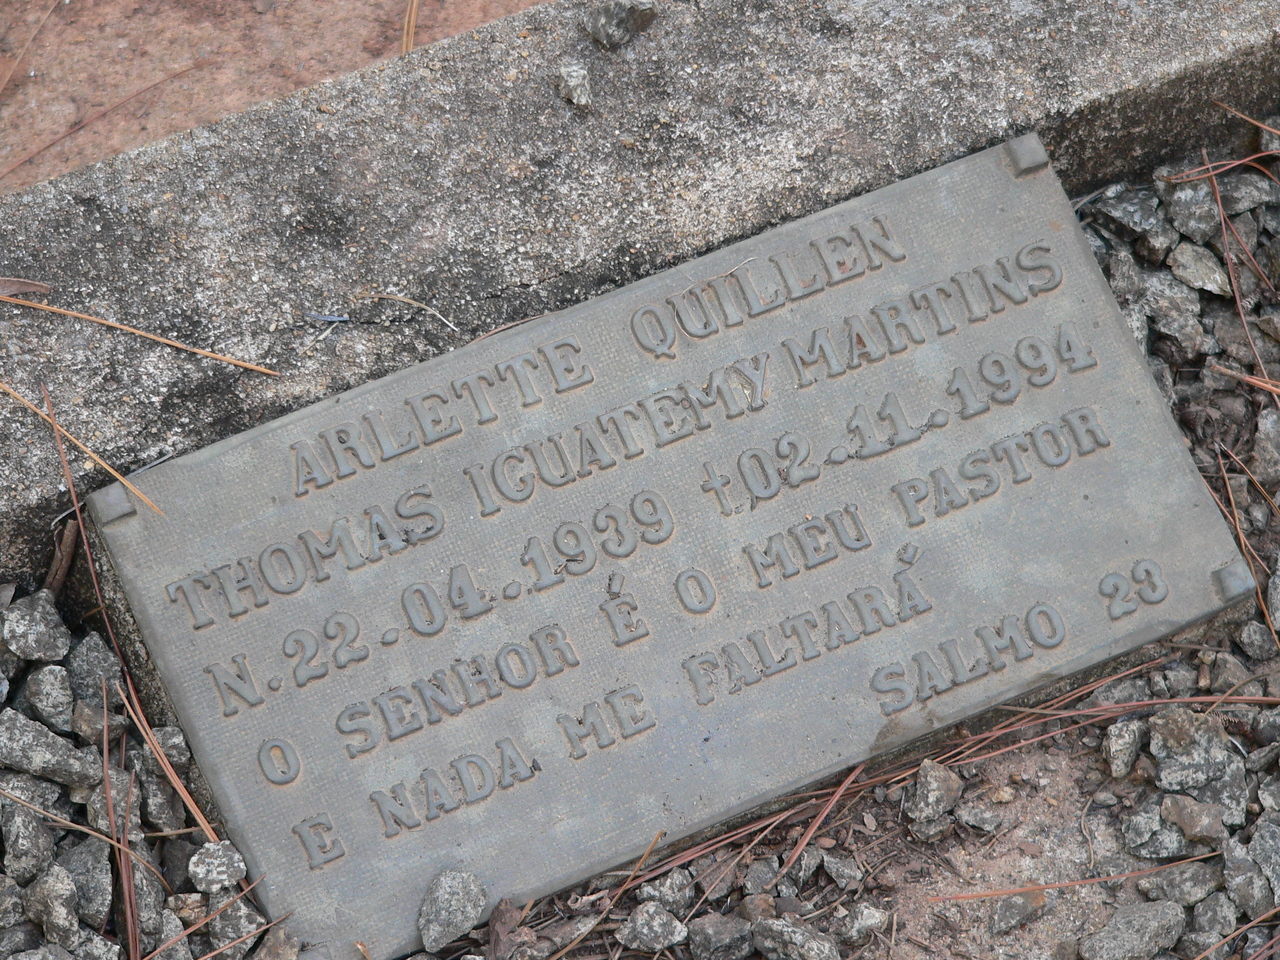 With second and third generation Confederados we see Portuguese influence in names and tombstone inscriptions.